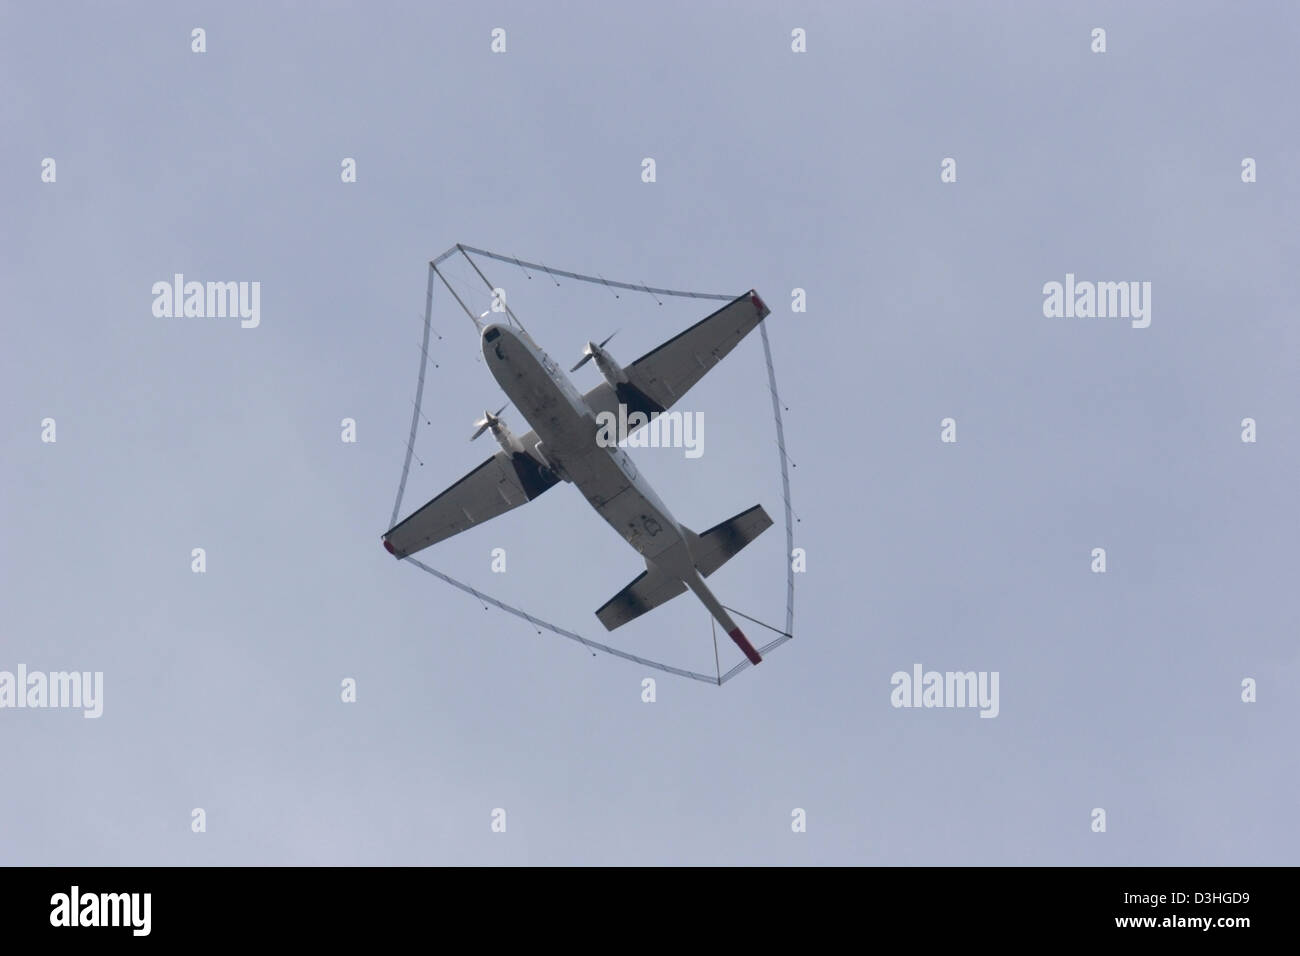 Fugro airborne electro-magnetic survey airplane aircraft Casa twin turbo-prop - Stock Image